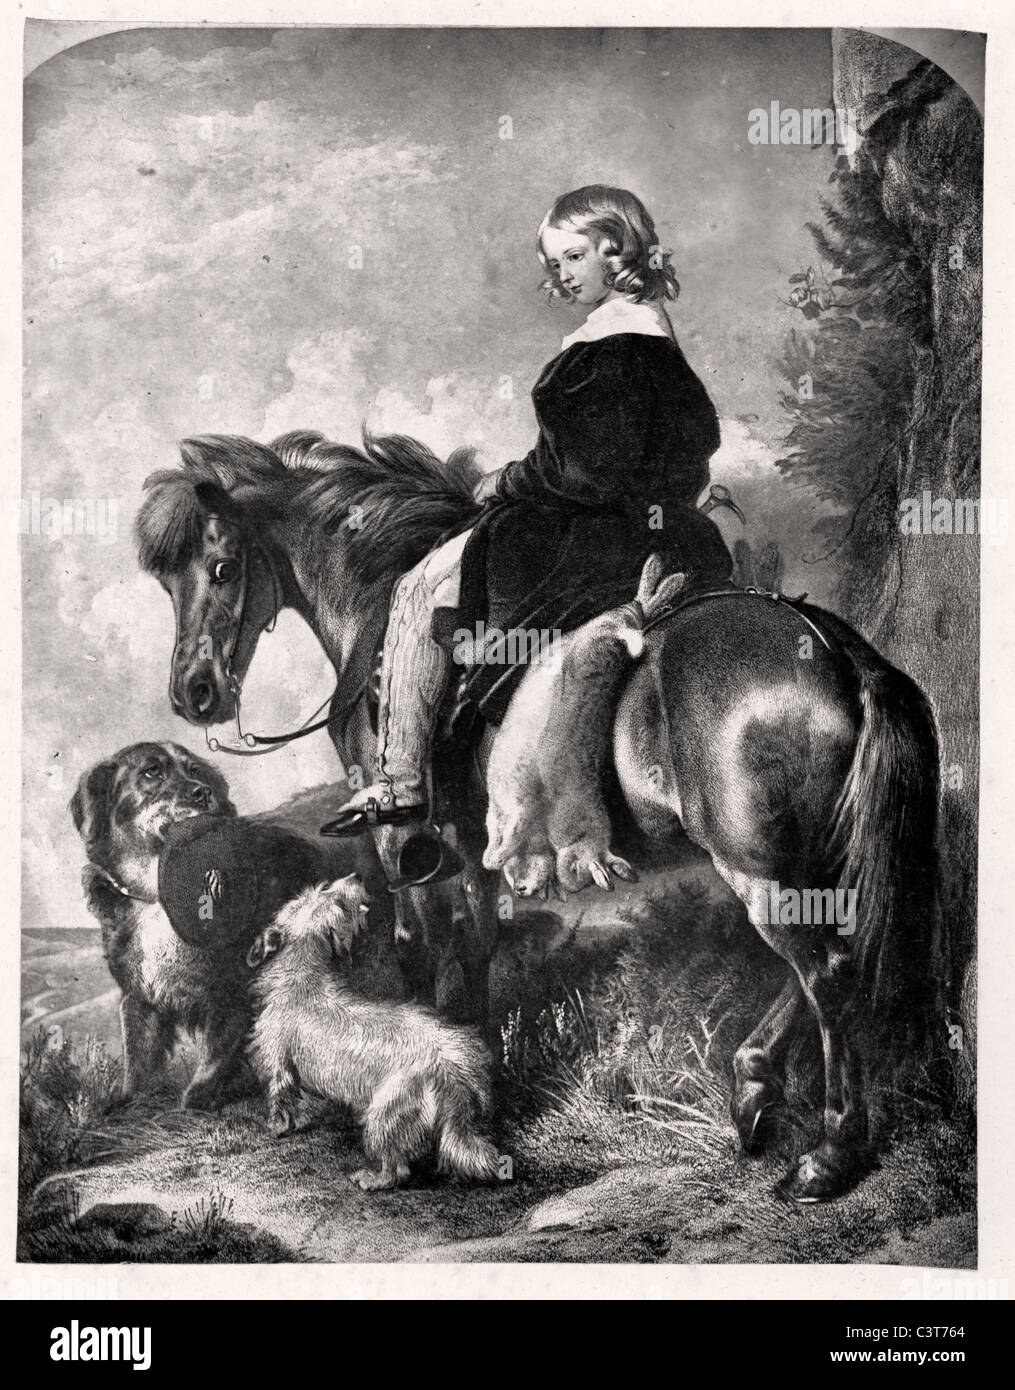 The Return from the Warren by Edwin Henry Landseer. A young boy on horseback, with two dead rabbits hanging from - Stock Image